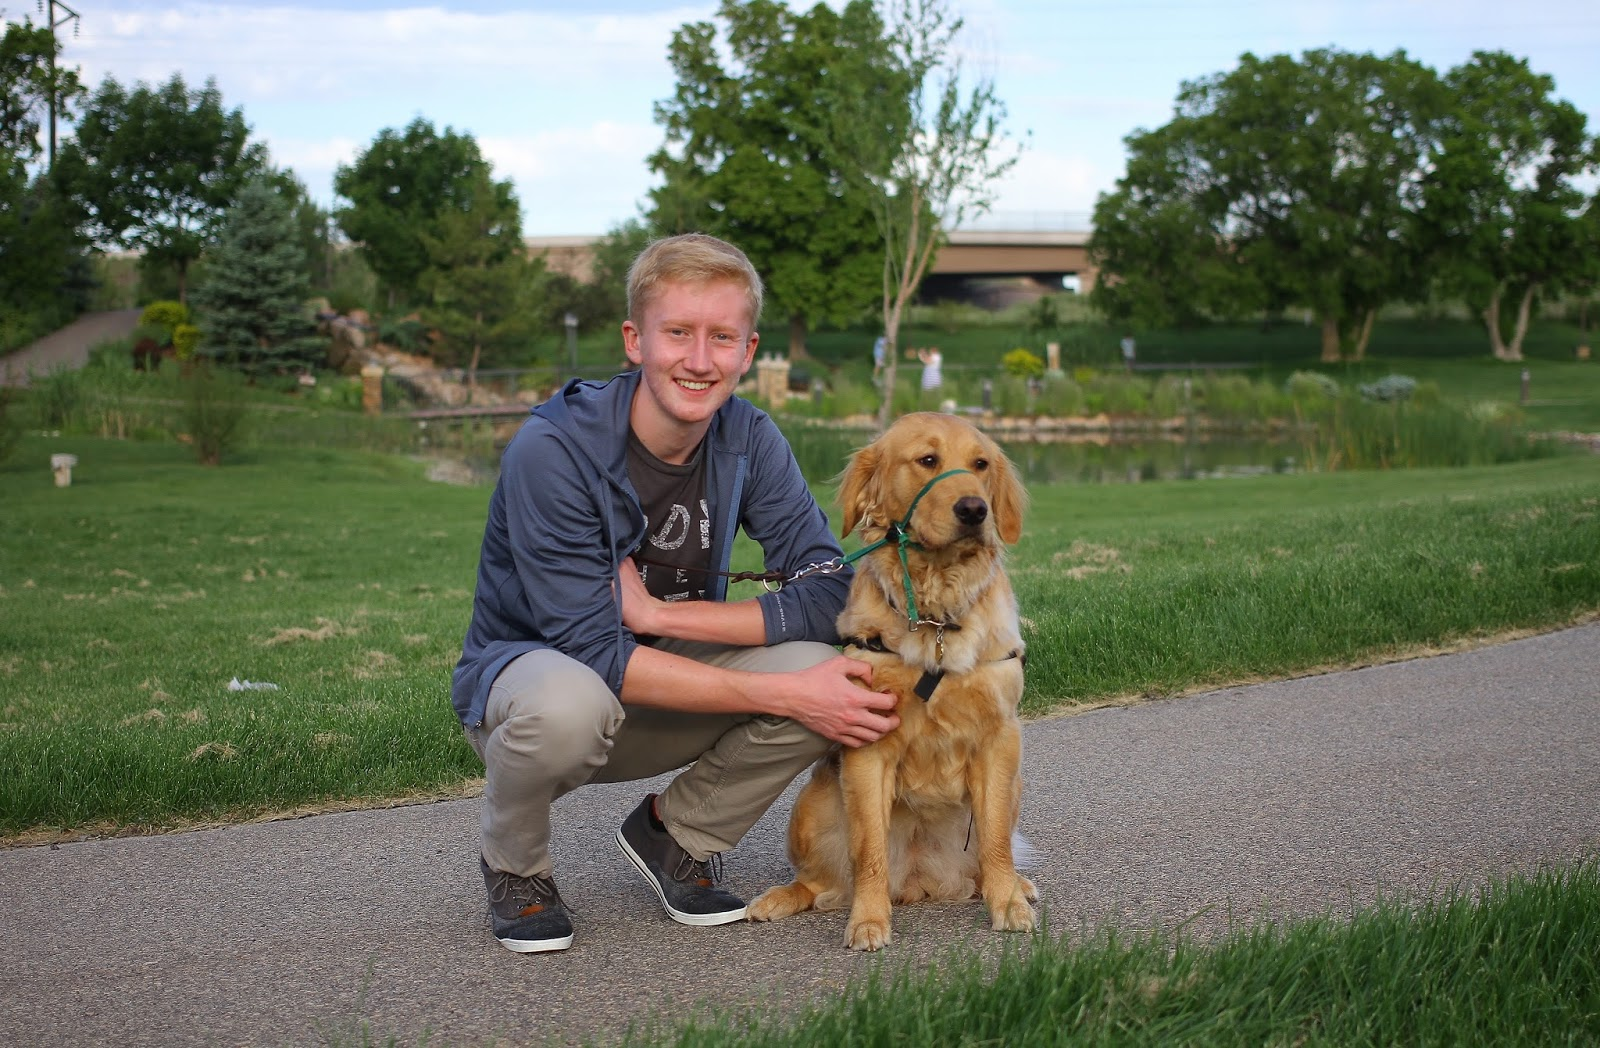 no bones about it guide dogs for the blind s blog  ian smiles posing a golden retriever guide dog puppy a green field and trees